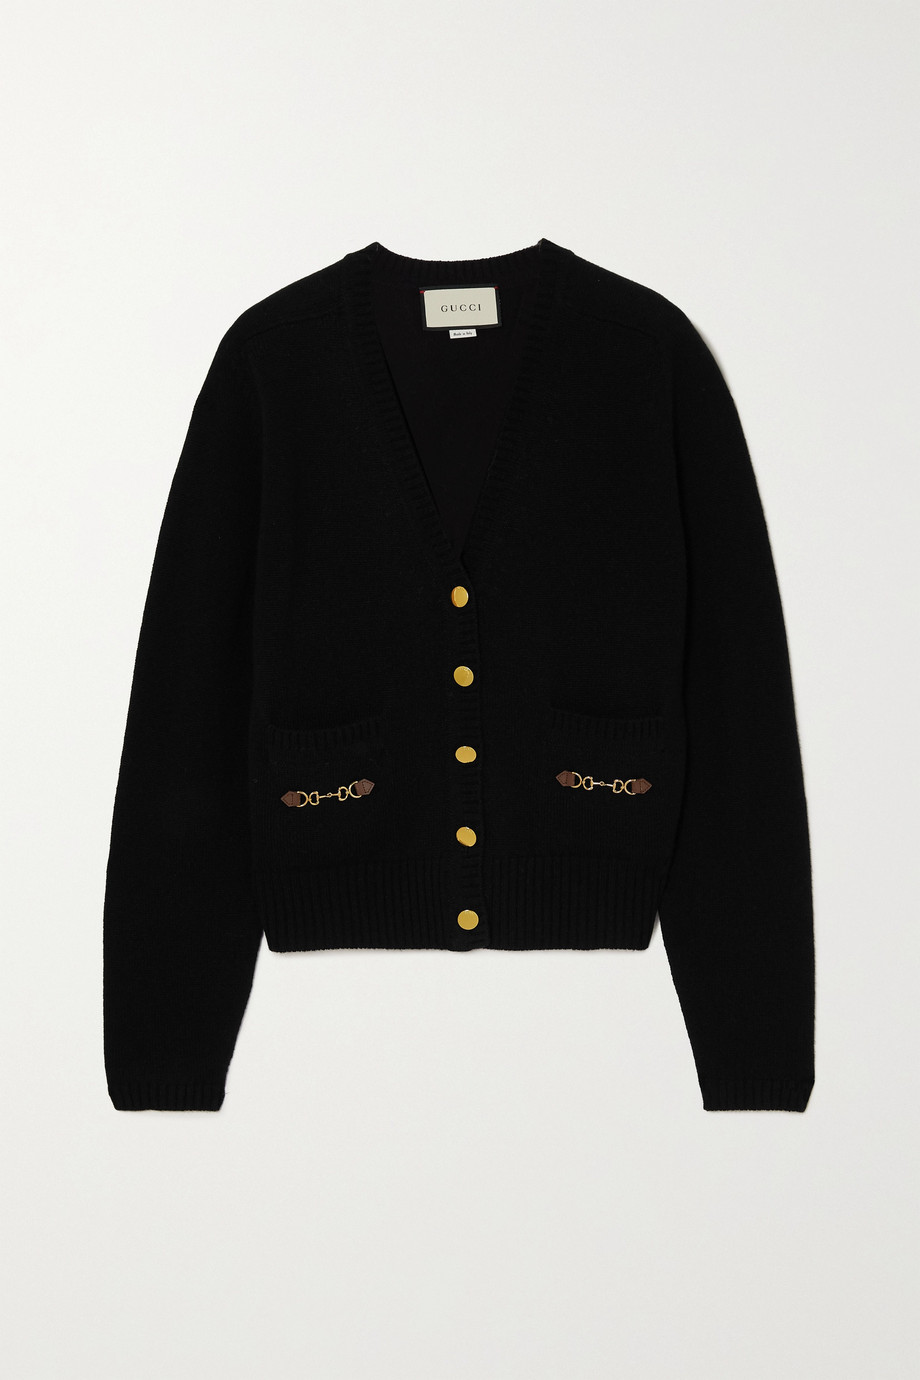 GUCCI Horsebit-detailed leather-trimmed cashmere cardigan